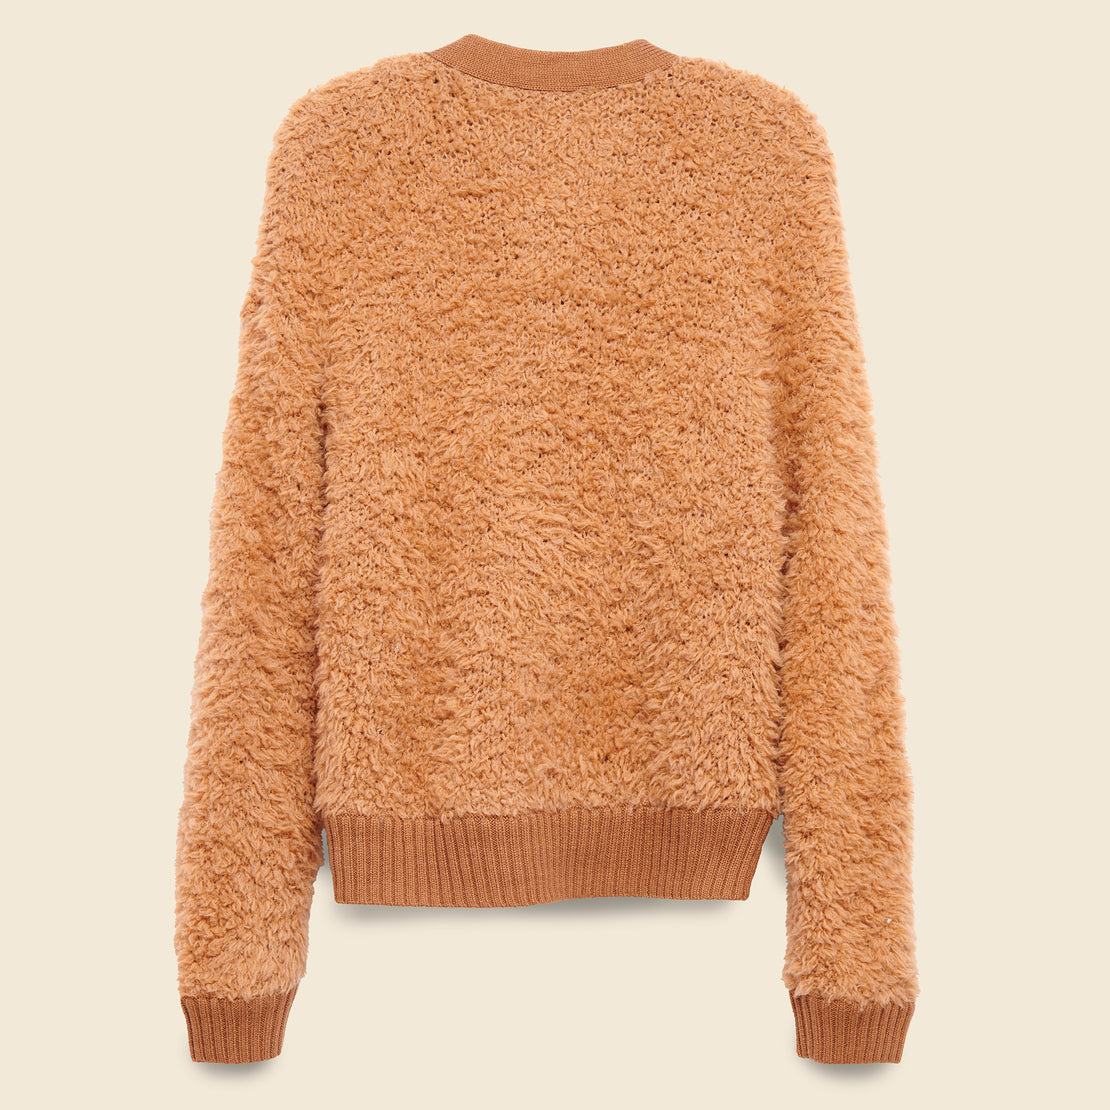 Wooly Cardigan - Terracotta